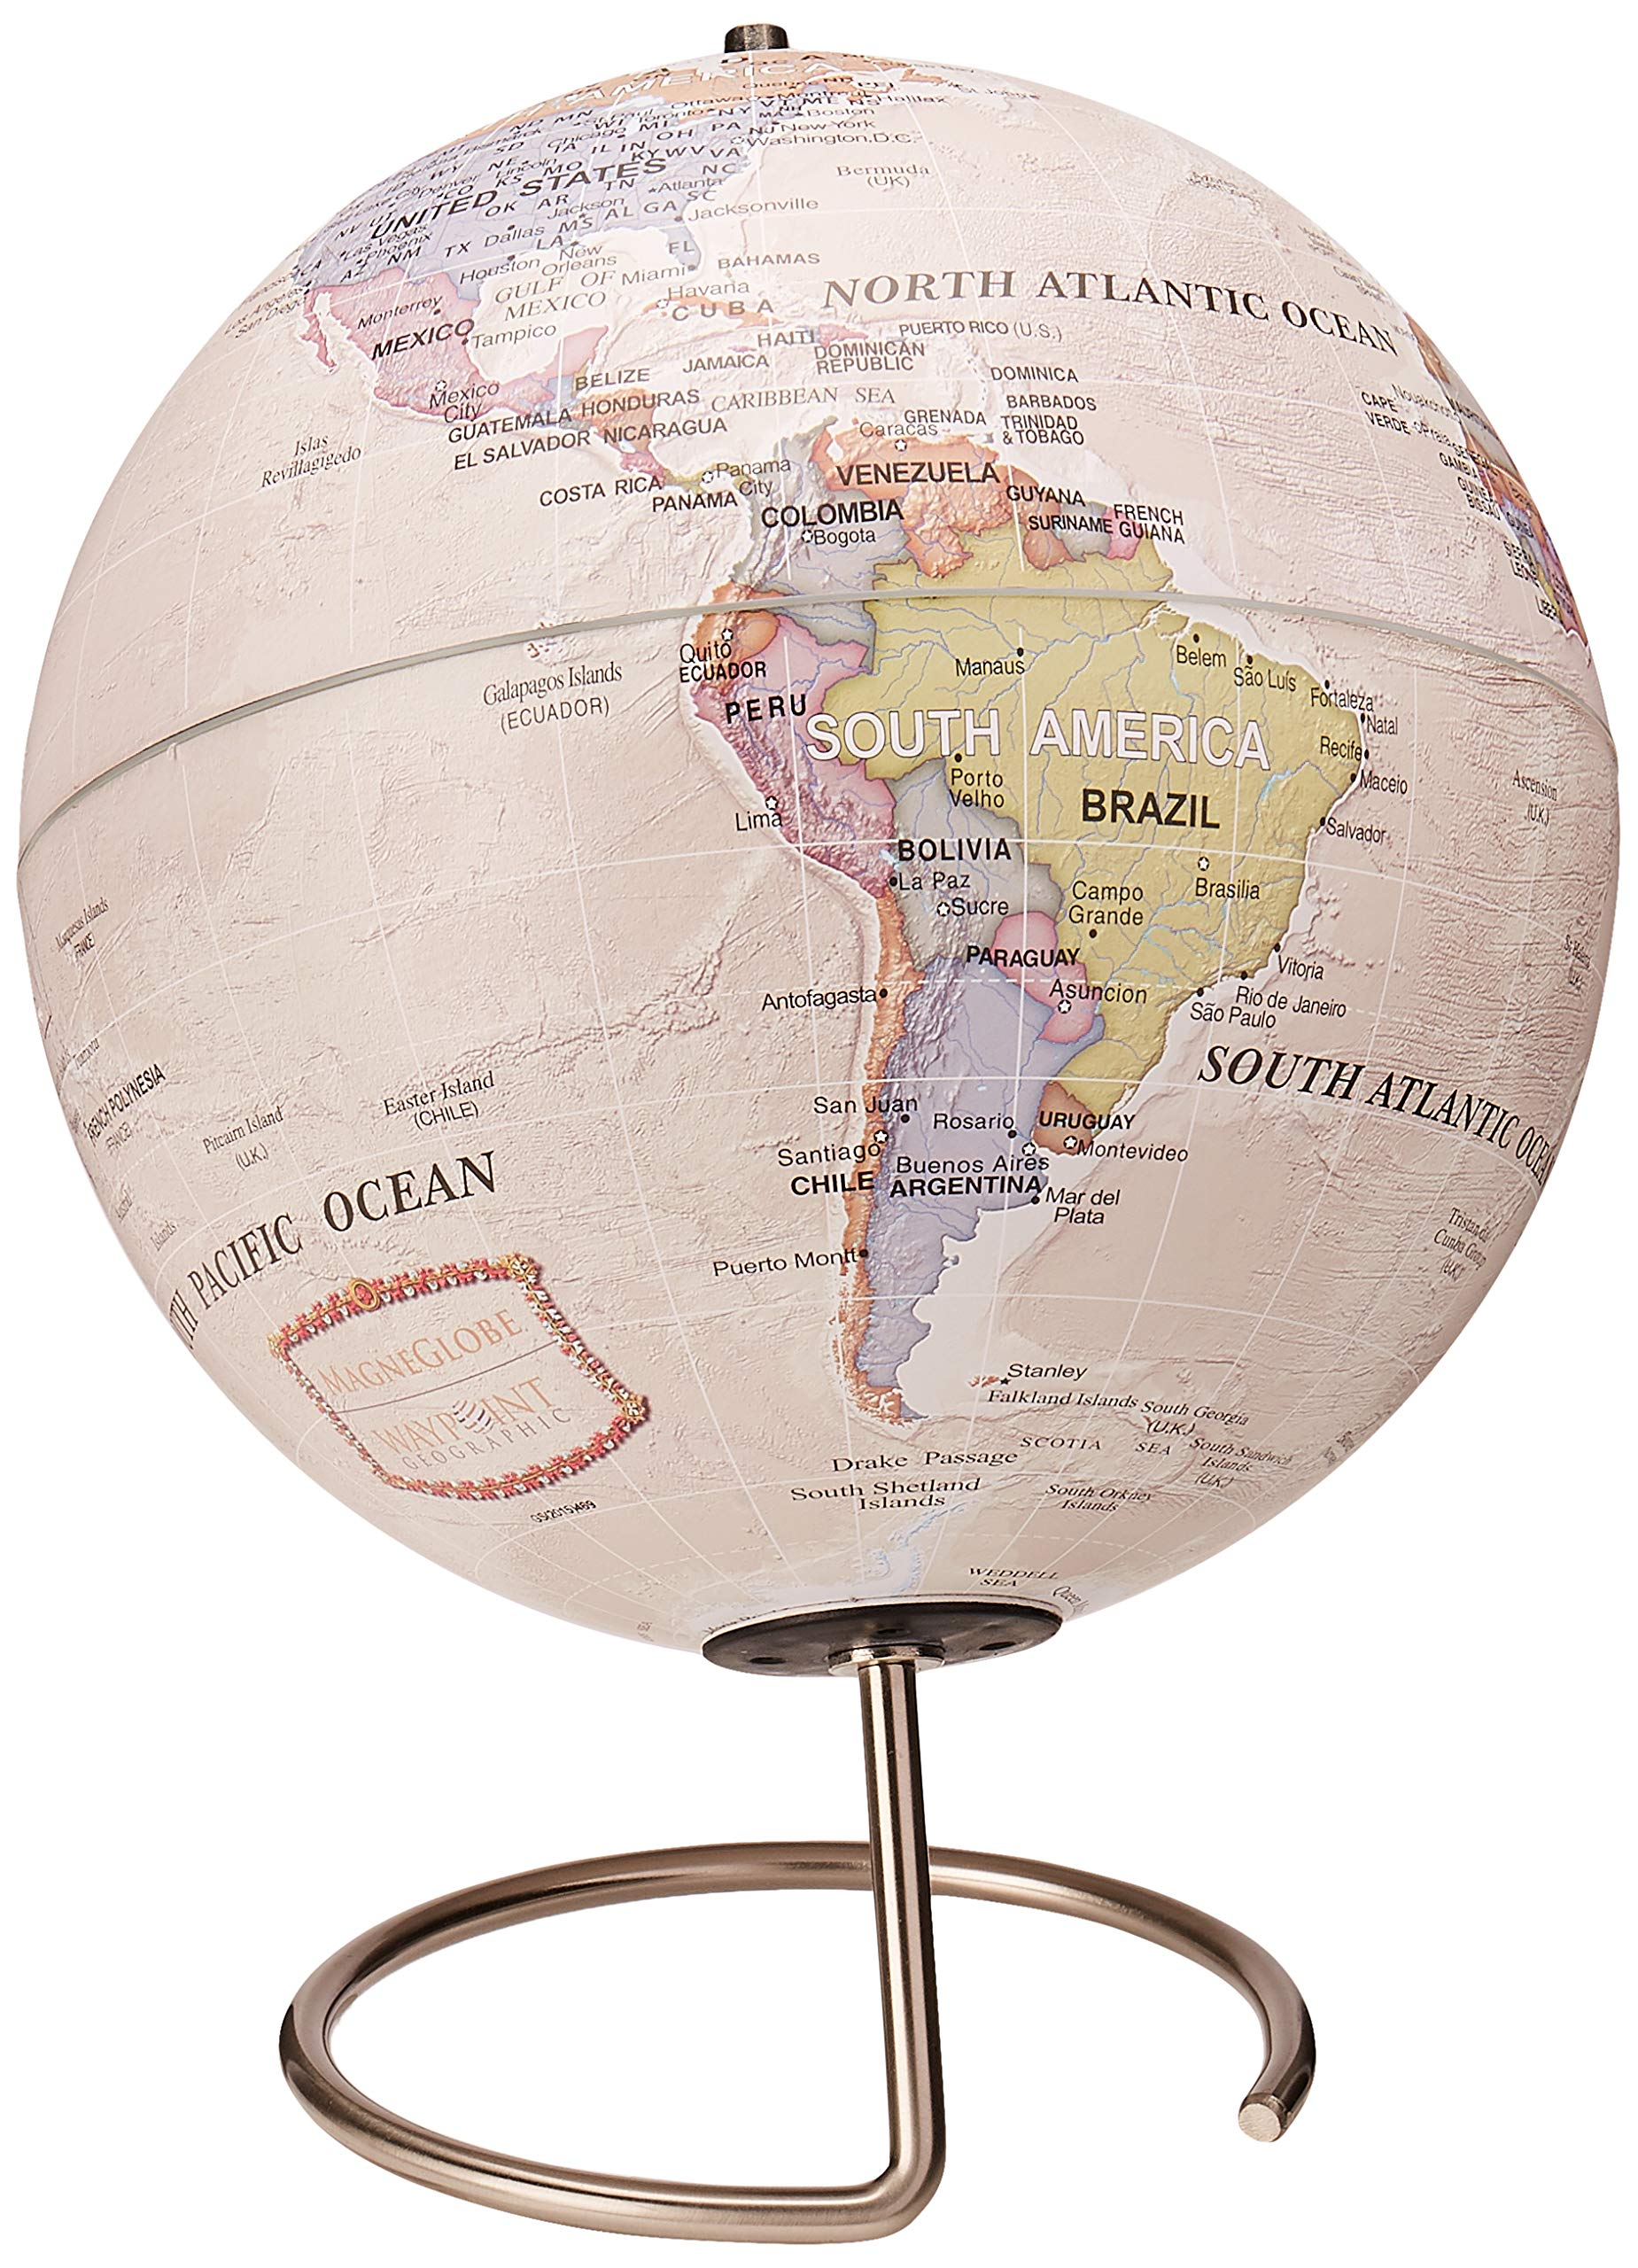 Waypoint Geographic Magneglobe Date World Globe with Stand-Includes 32 Magnetic Pins for Marking Travels and Fun Points of Interest (Classic Ocean)